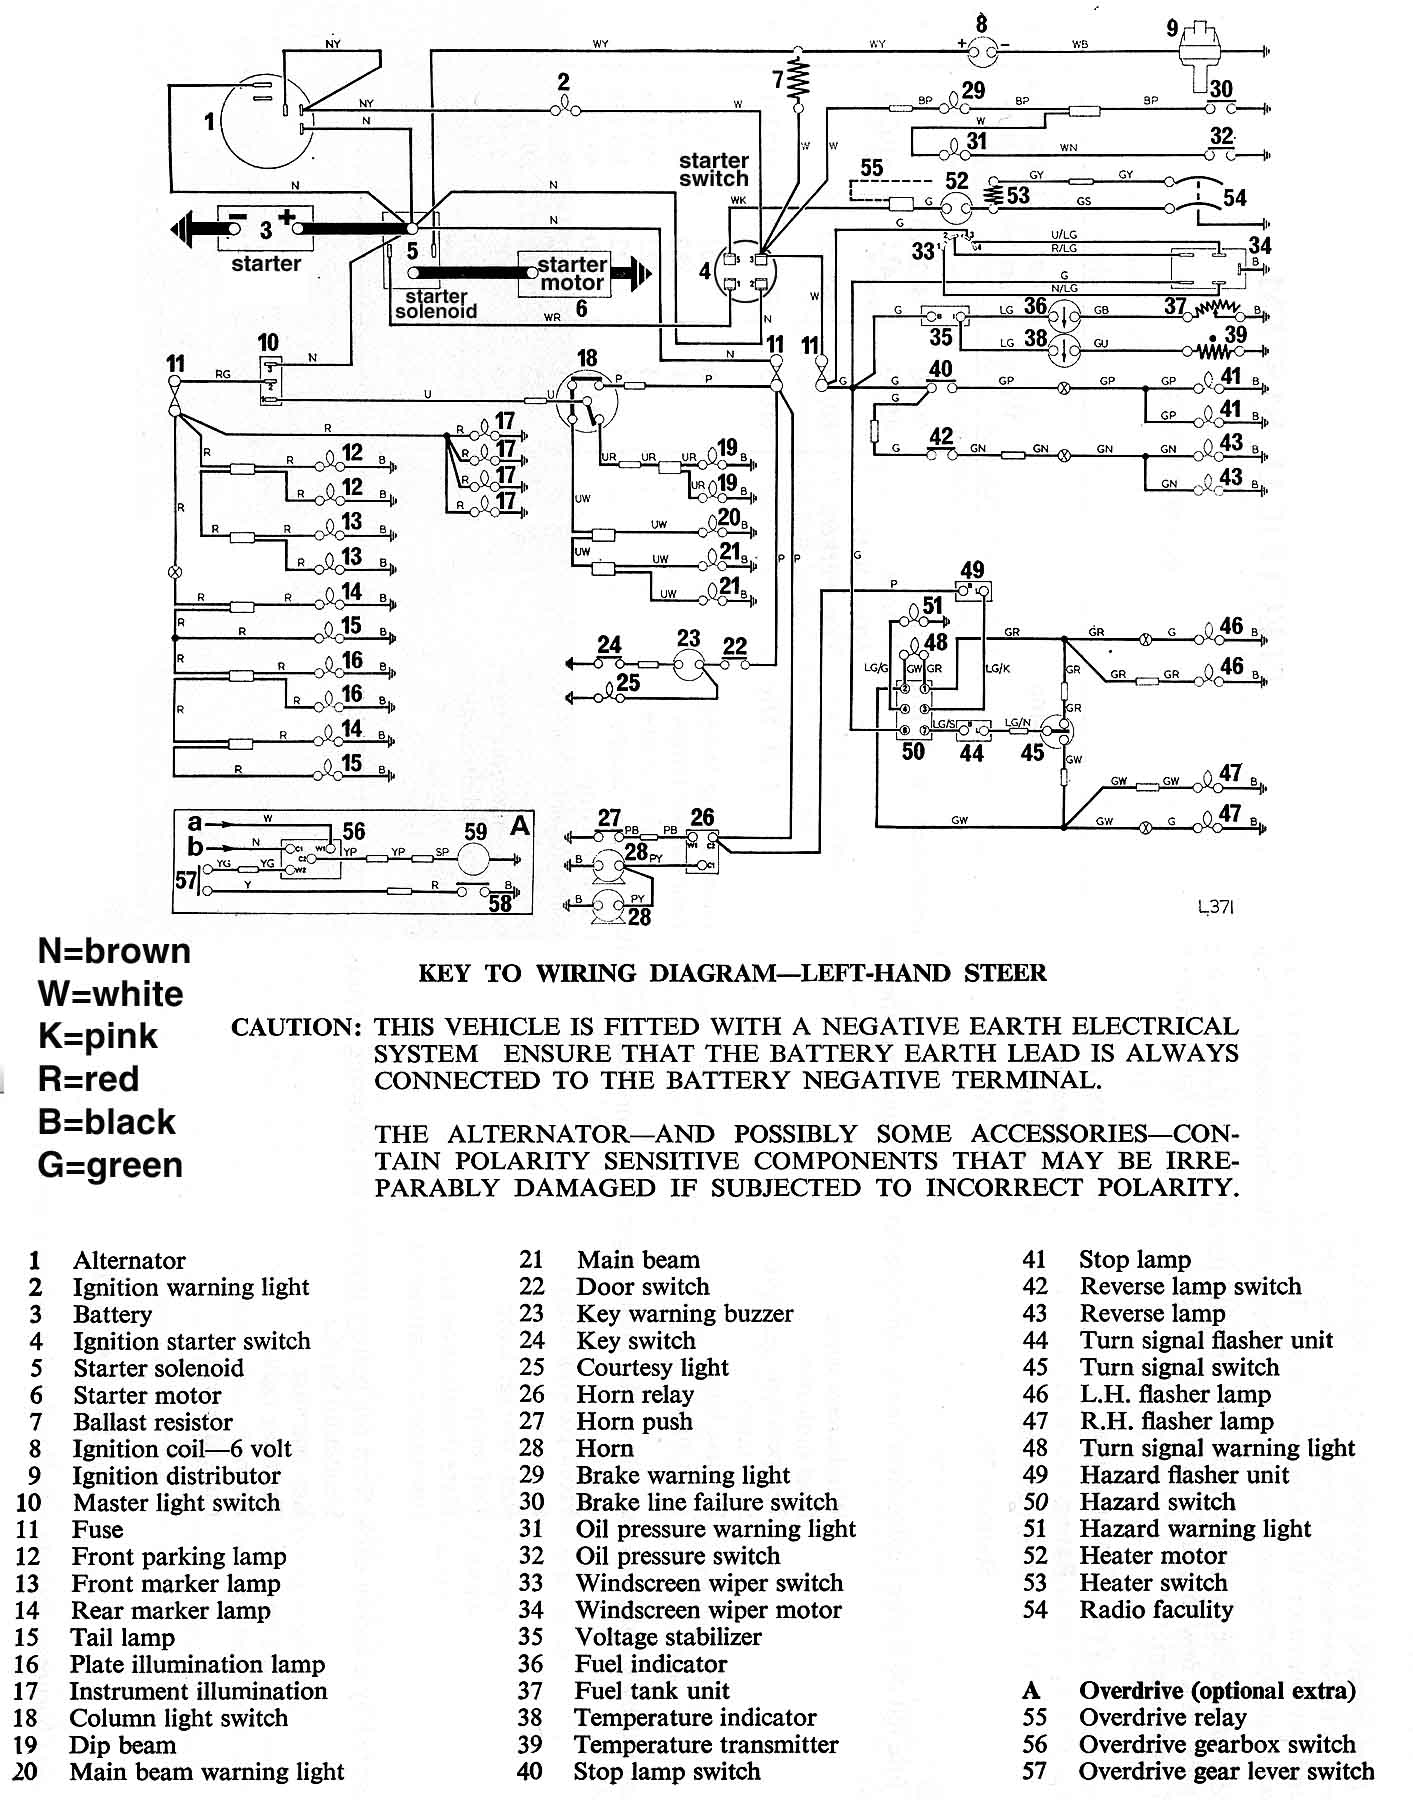 chiltons wiring diagrams manual 1990 domestic carsmotor age professional technicians edition chiltons wiring diagrams manual domestic cars